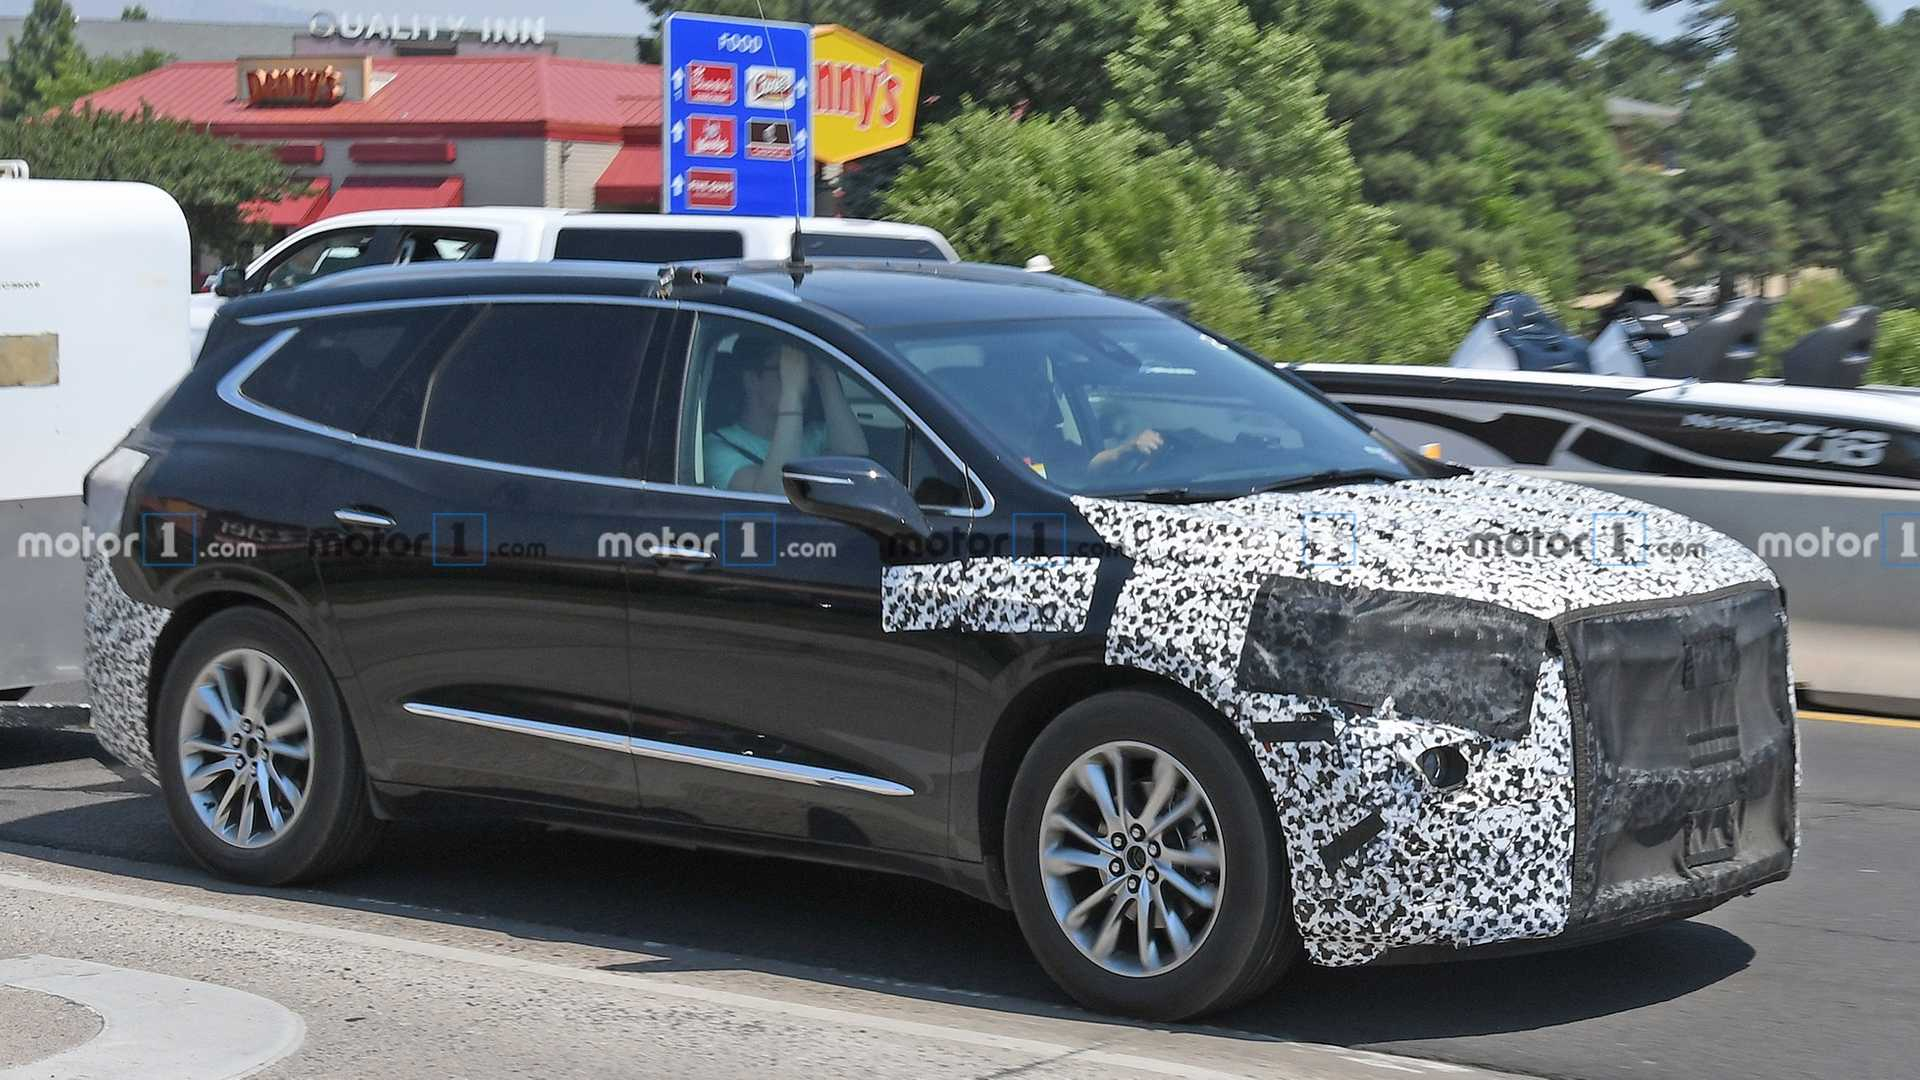 2021 Buick Enclave Spied For The First Time Build A New 2021 Buick Enclave Avenir